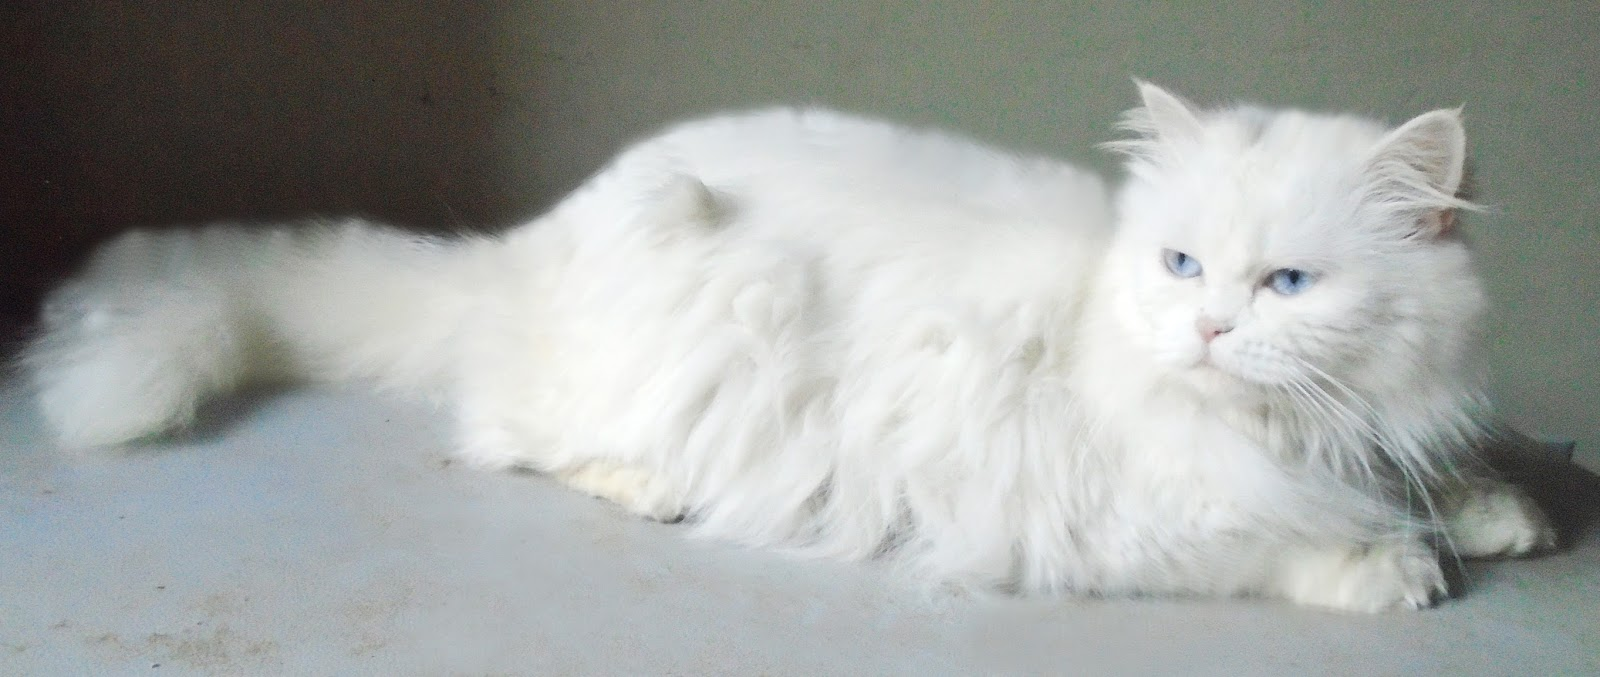 female cat for sale contact 03152020714 age 11 month old pure persian ...